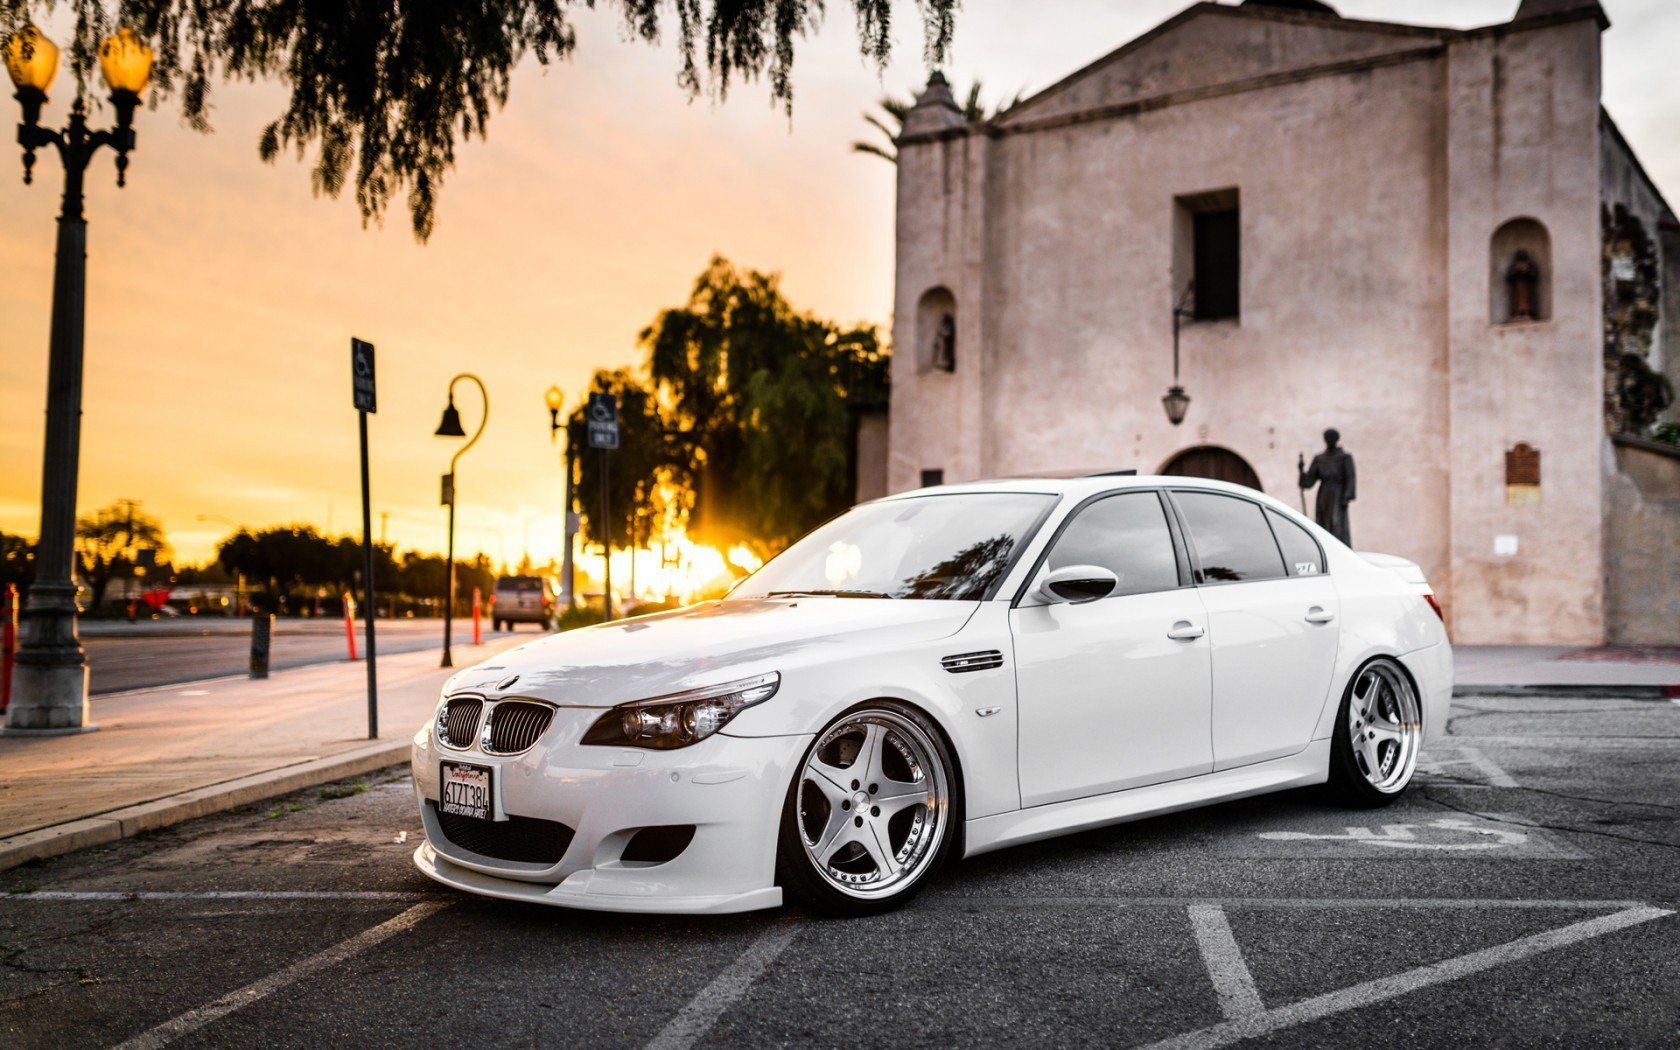 BMW M5 White Tuning City